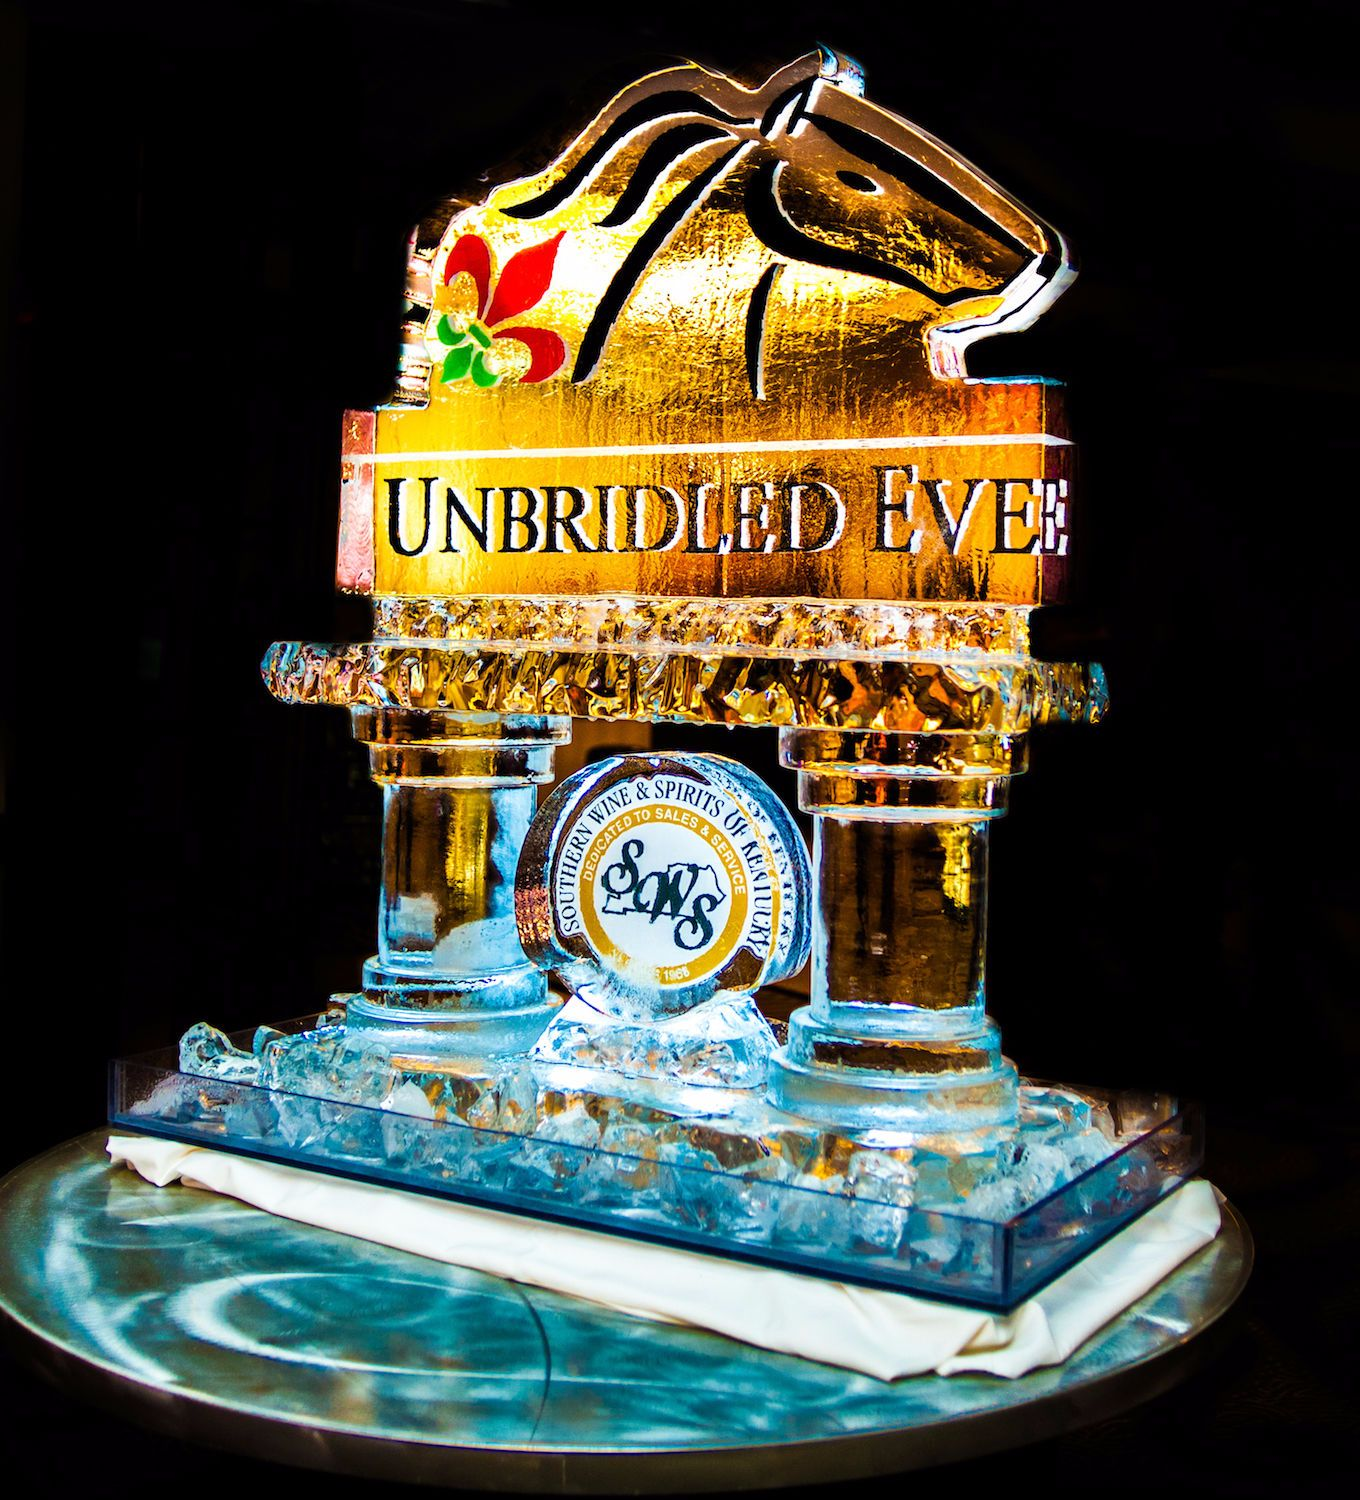 Social Media Marketing at Unbridled Eve Gala